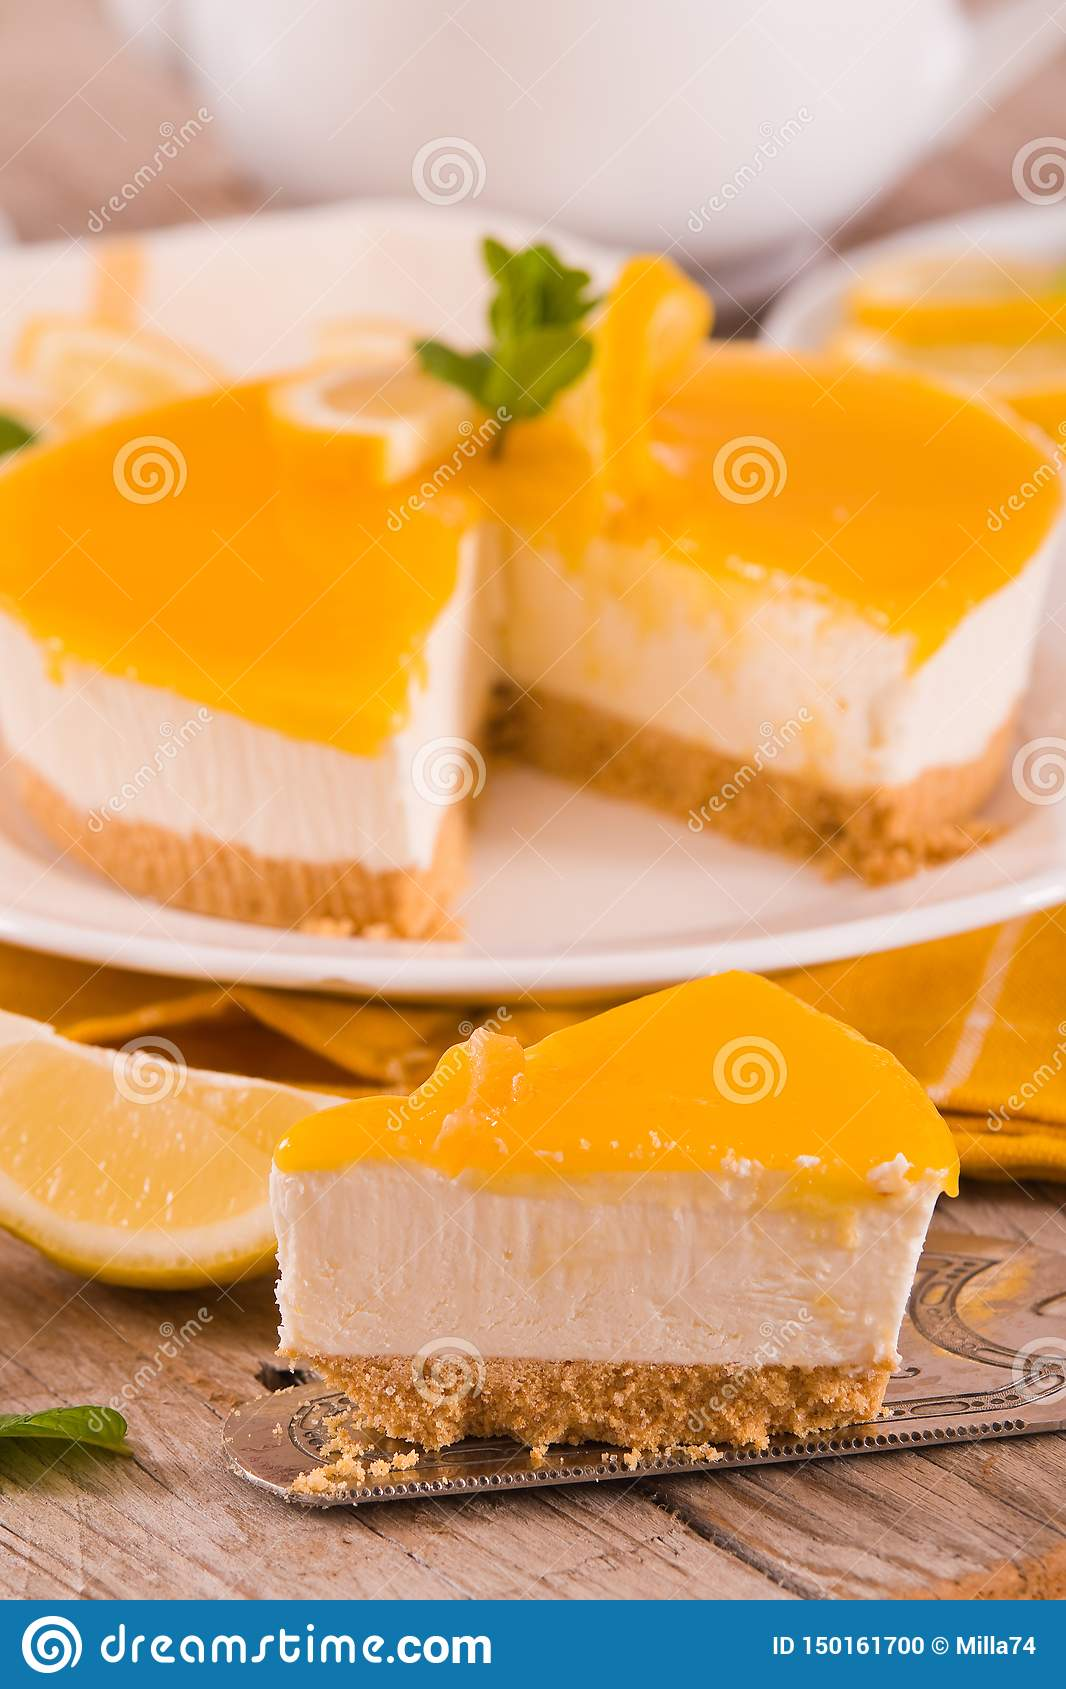 Lemon and mascarpone cheesecake.